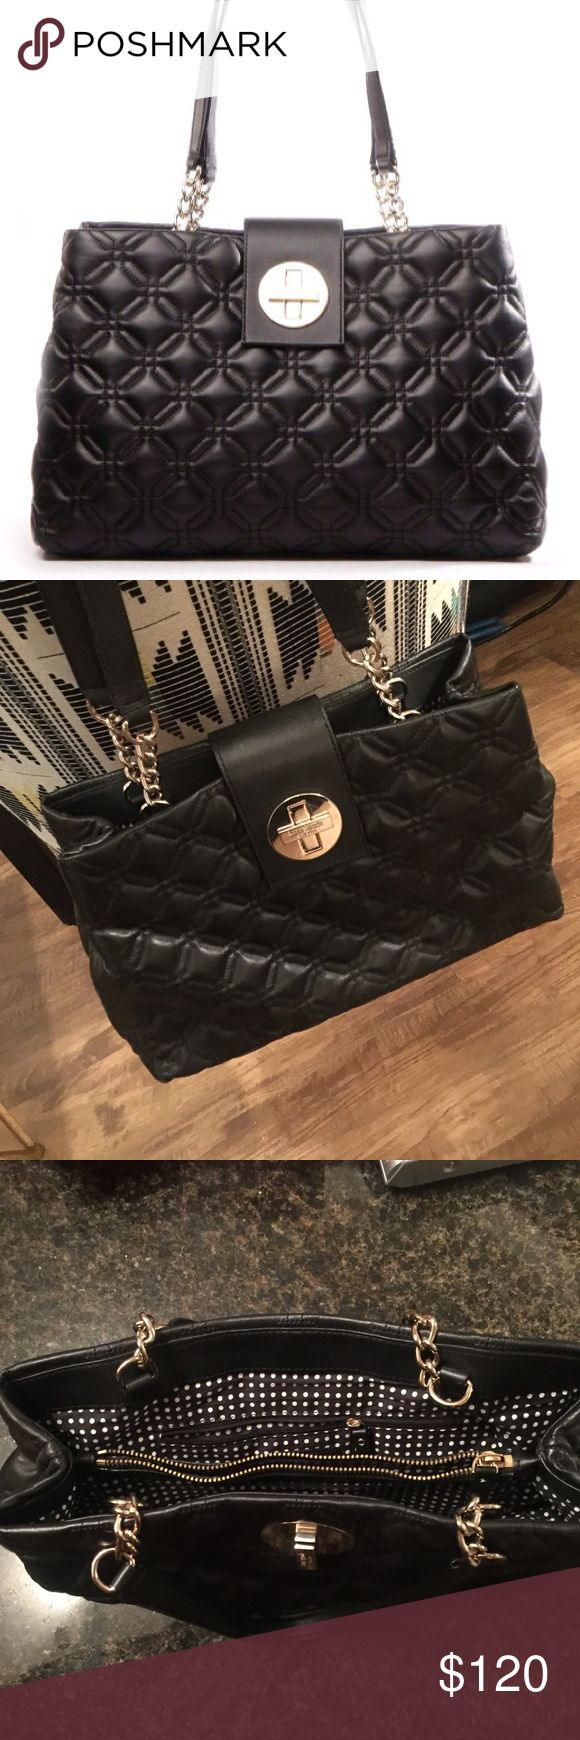 Kate Spade Elena Bag EUC! Super cute but it just sits in my closet- needs a new home! Black quilted leather and super. It's polka dot print on the inside. Happy to add more photos, just ask! kate spade Bags Shoulder Bags